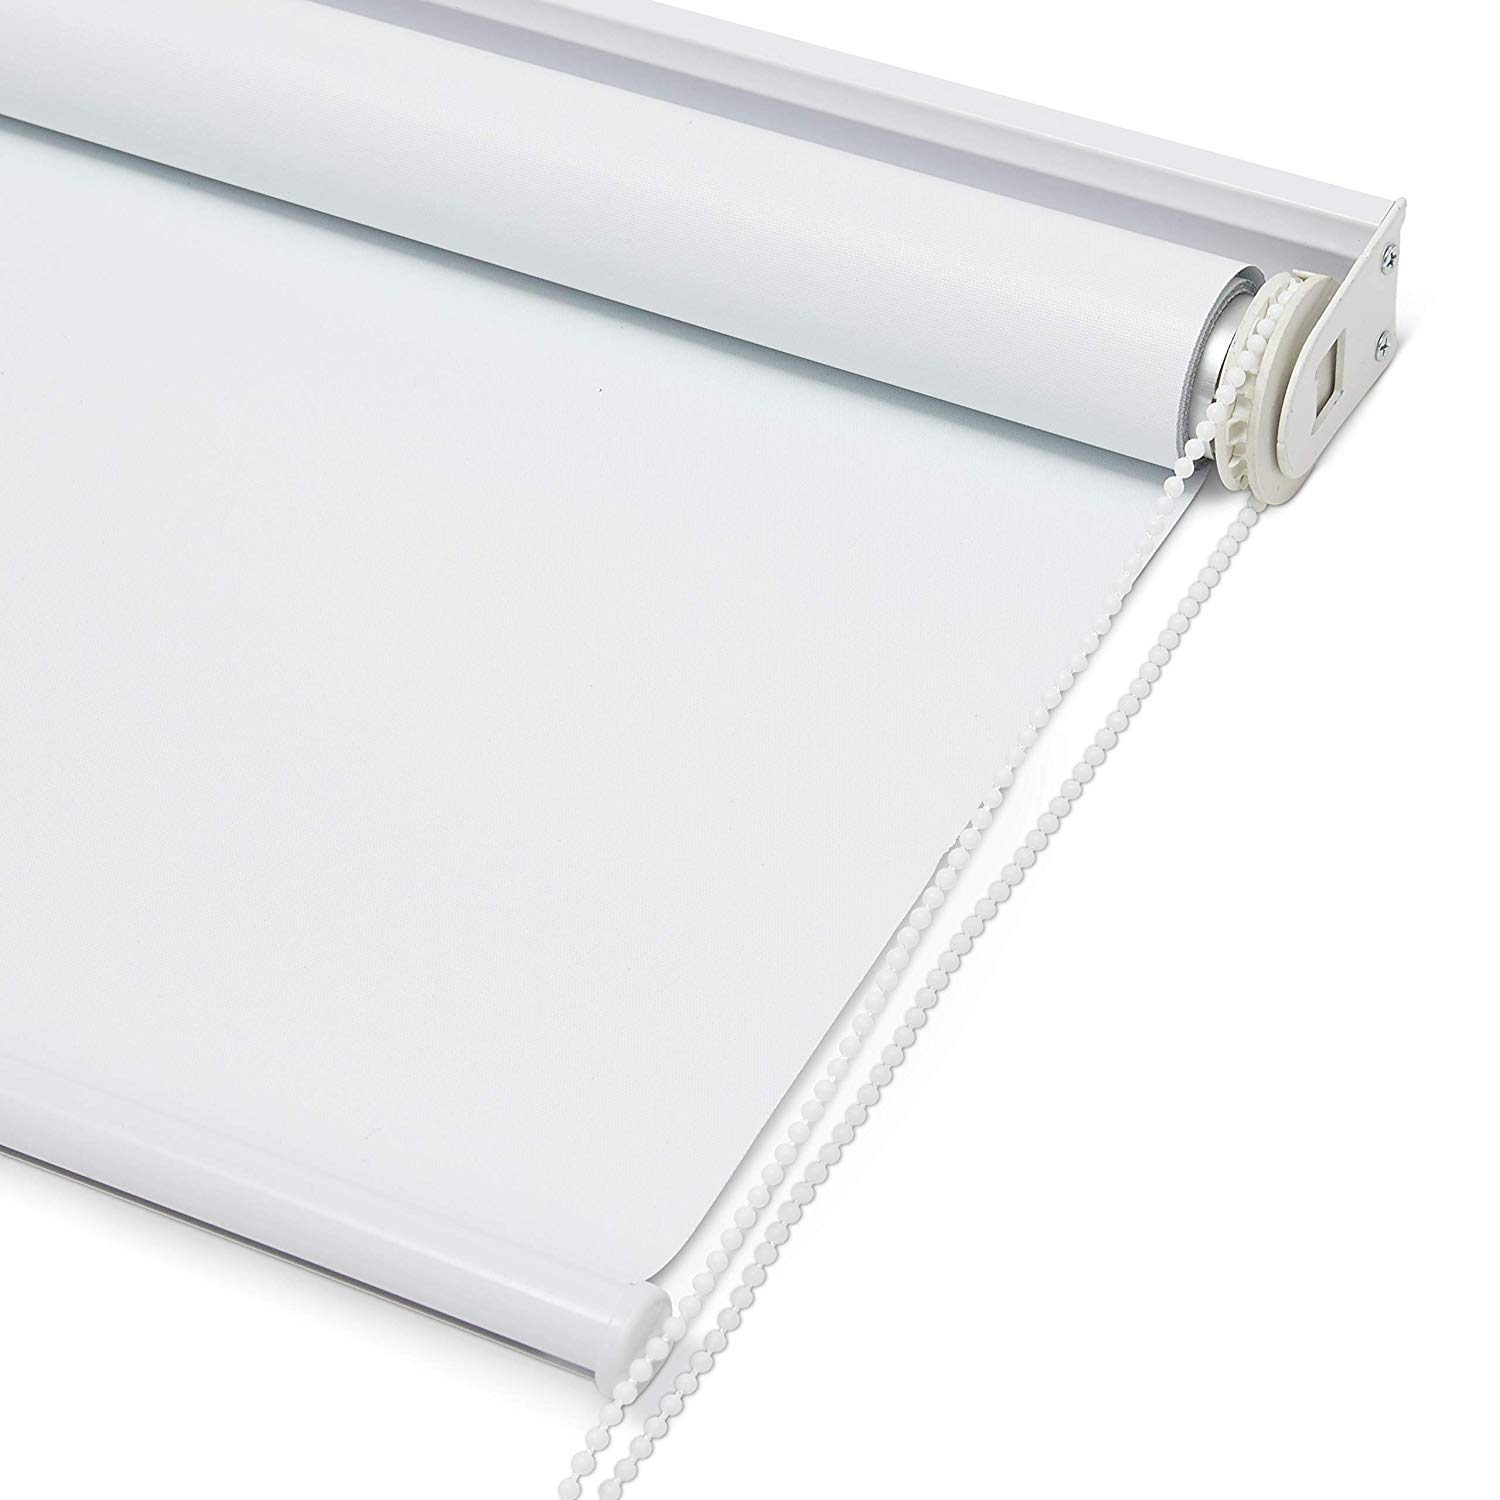 Kyle & Bryce Blackout Roller Shade - White - Smooth Mechanics - Temperature Controlling Blinds - Temporary Darkening - Classic Sleek Style - Multiple Sizes - Window Cover (White, 24 x 72 inch)